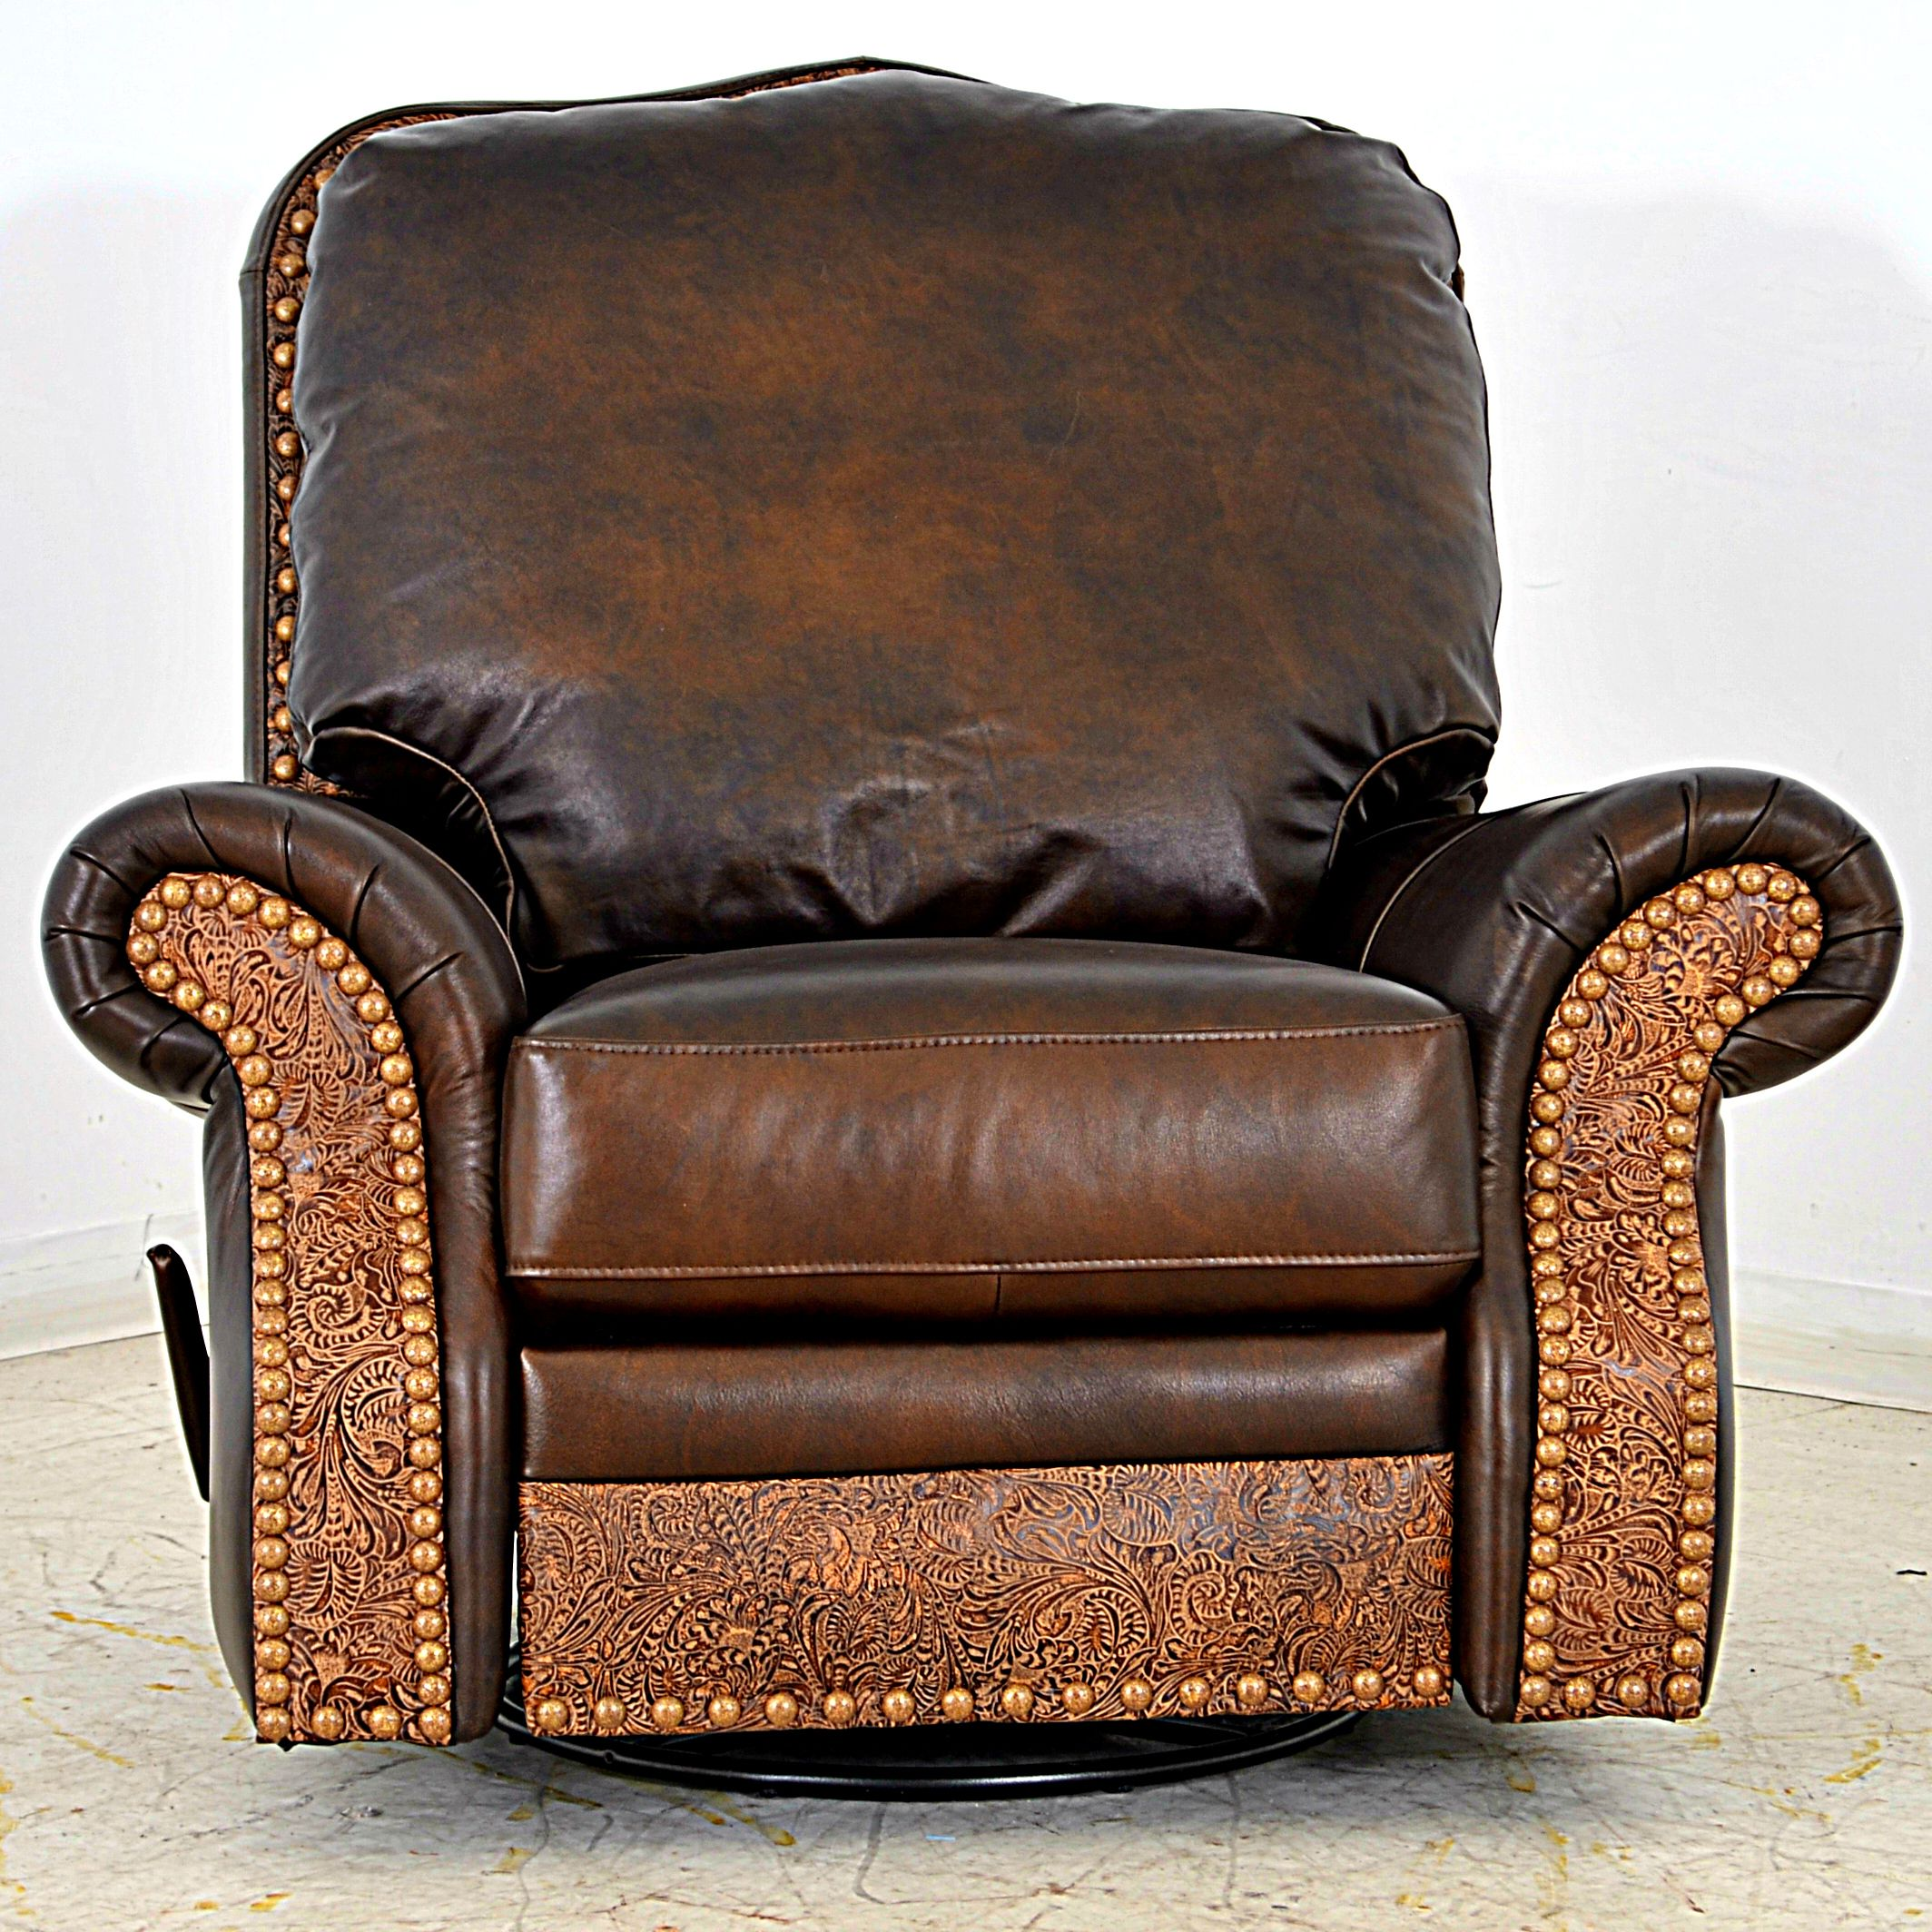 Leather swivel rocker recliner, made in USA. Customize one